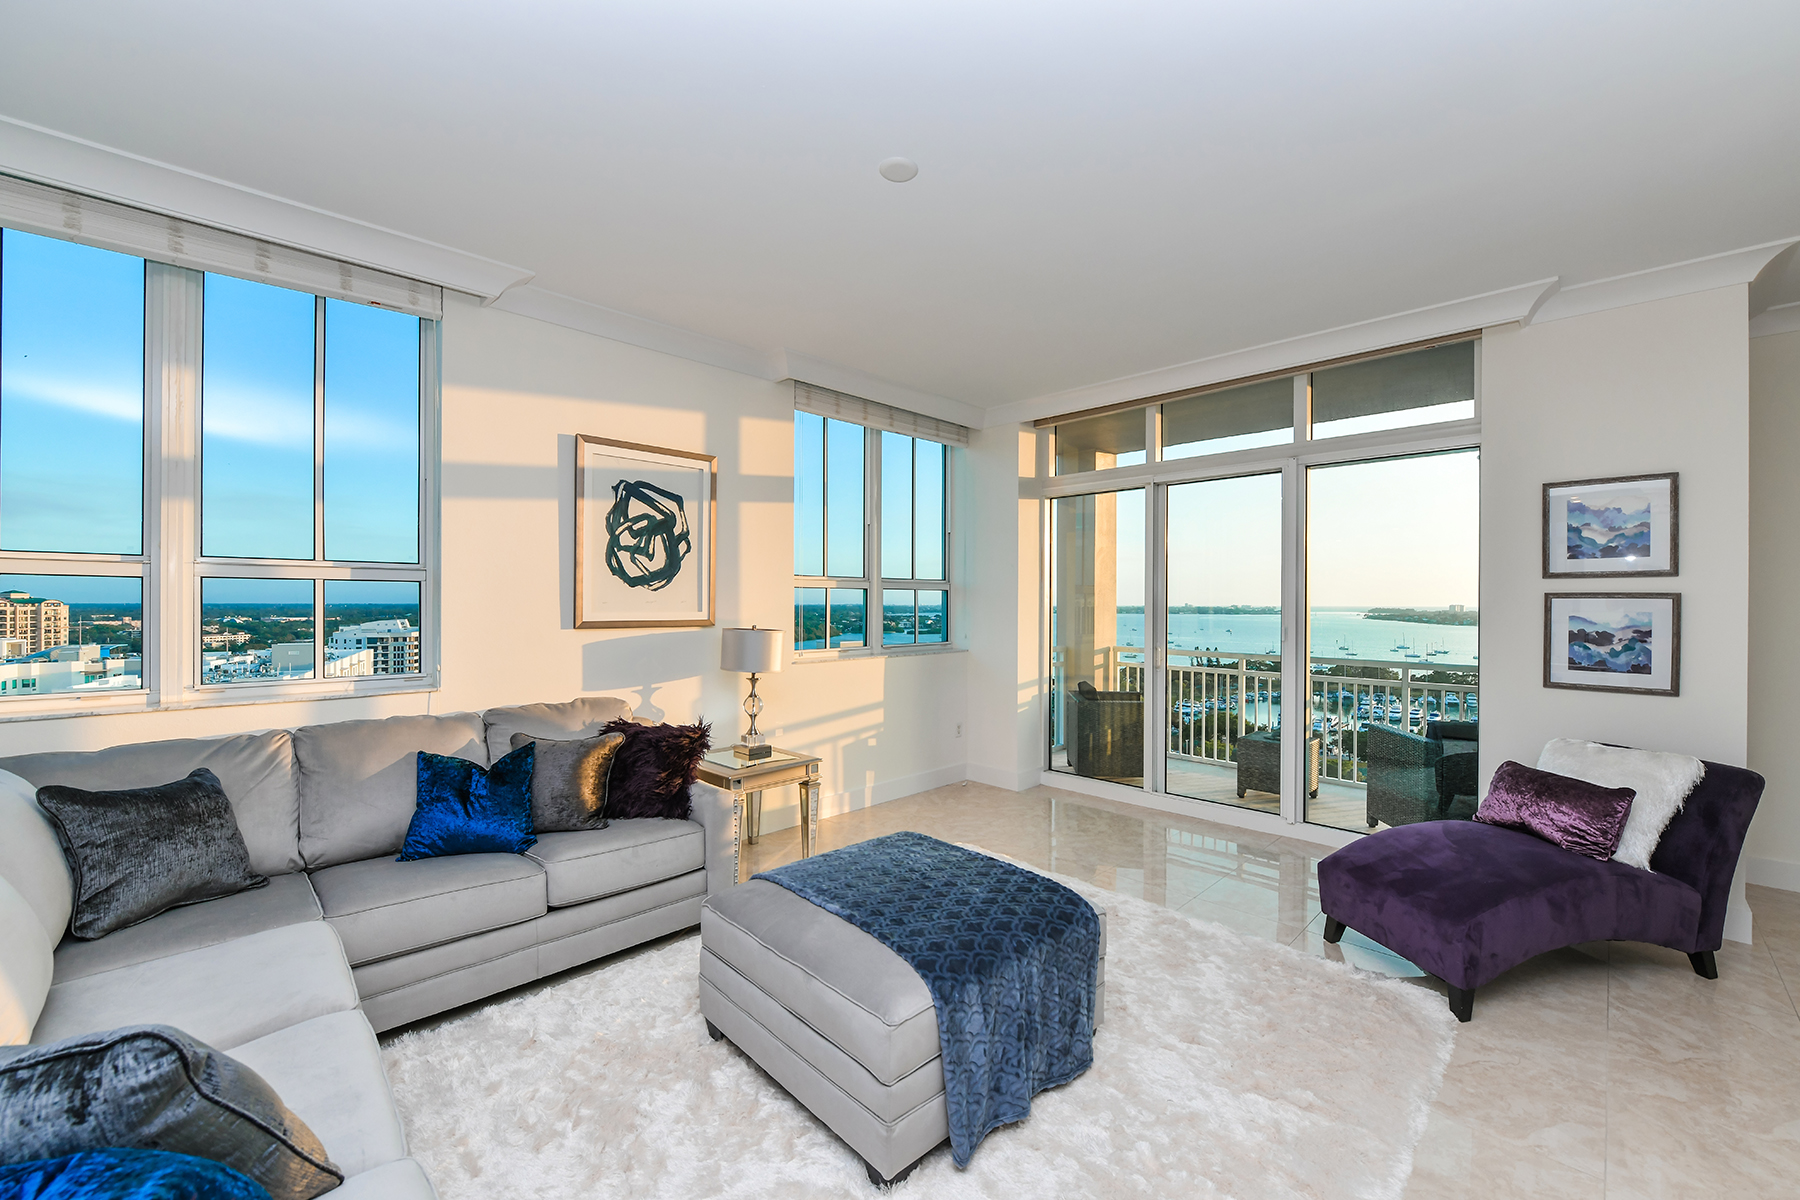 Additional photo for property listing at 1350 MAIN RESIDENTIAL 1350  Main St 1606,  Sarasota, Florida 34236 United States